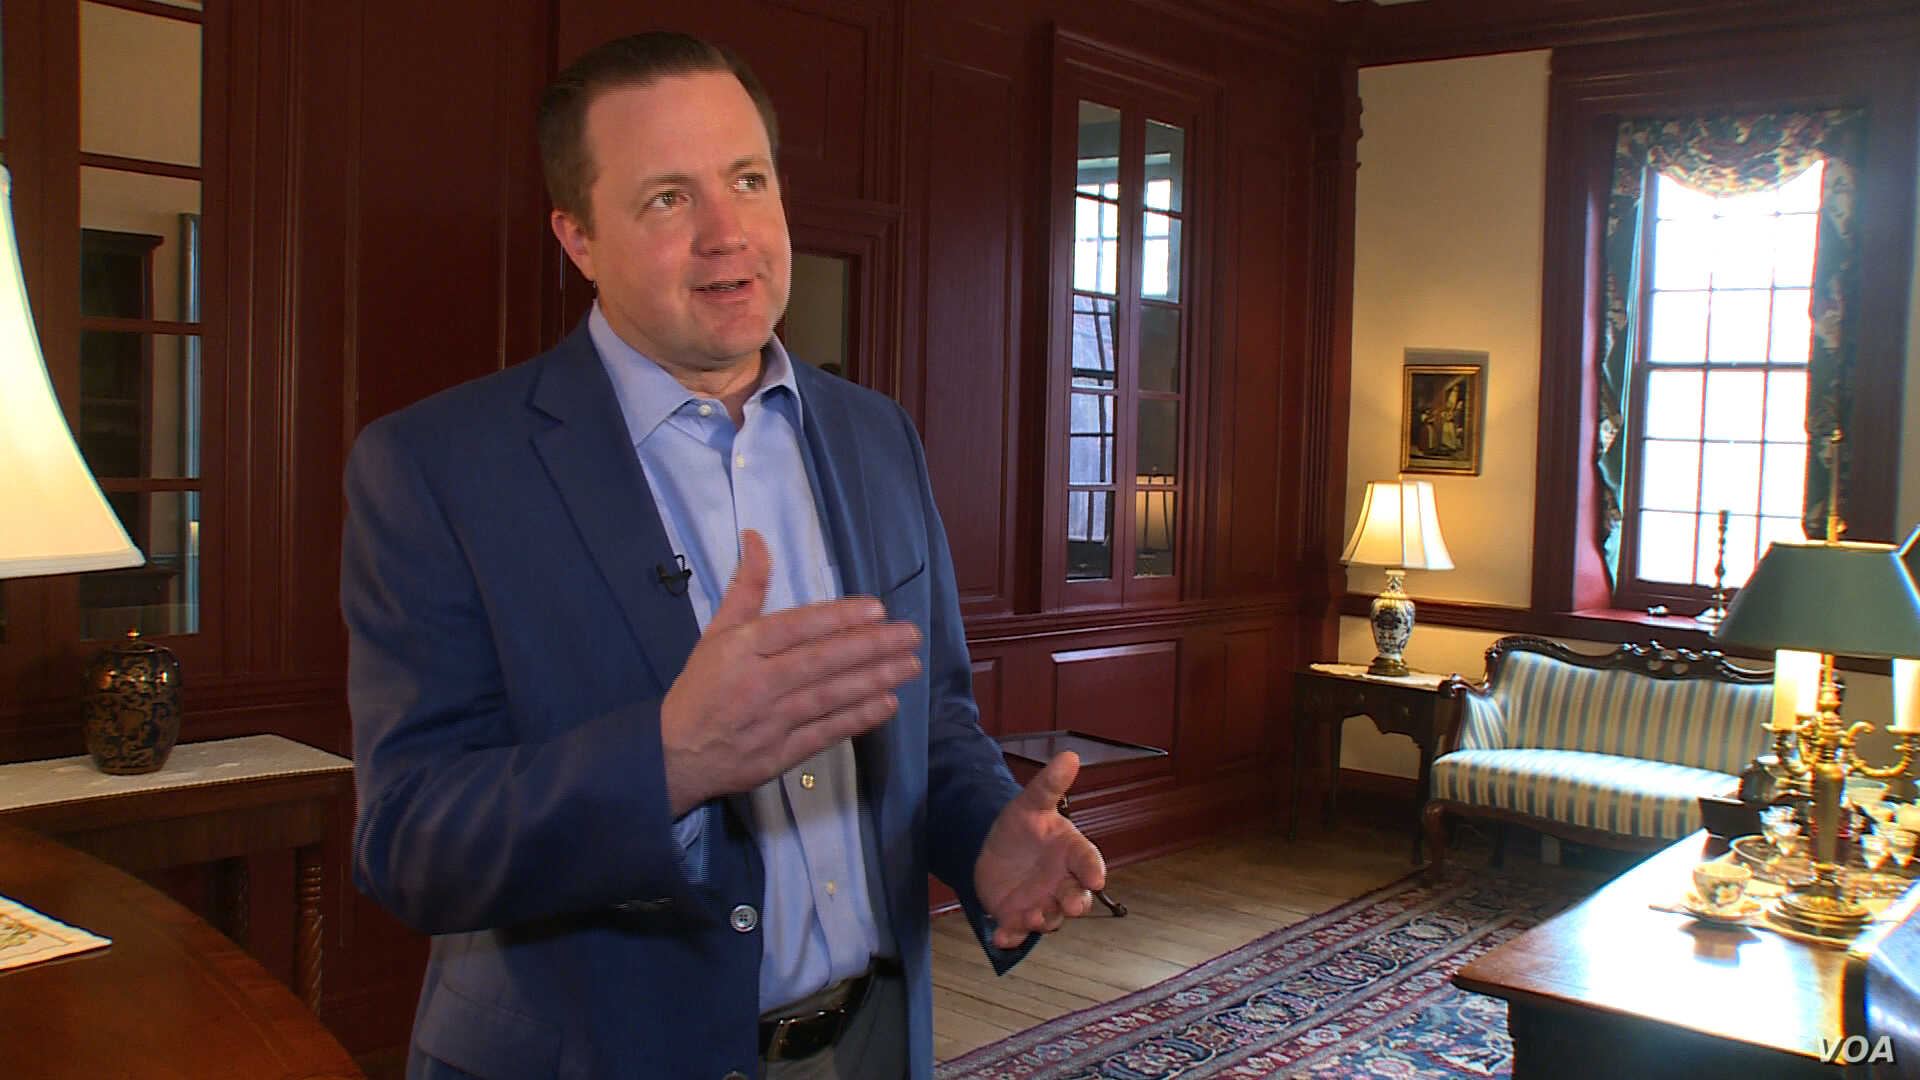 Prince William County board chair Corey Stewart lives in a historic home where George Washington once slept. (S. Baragona/VOA)